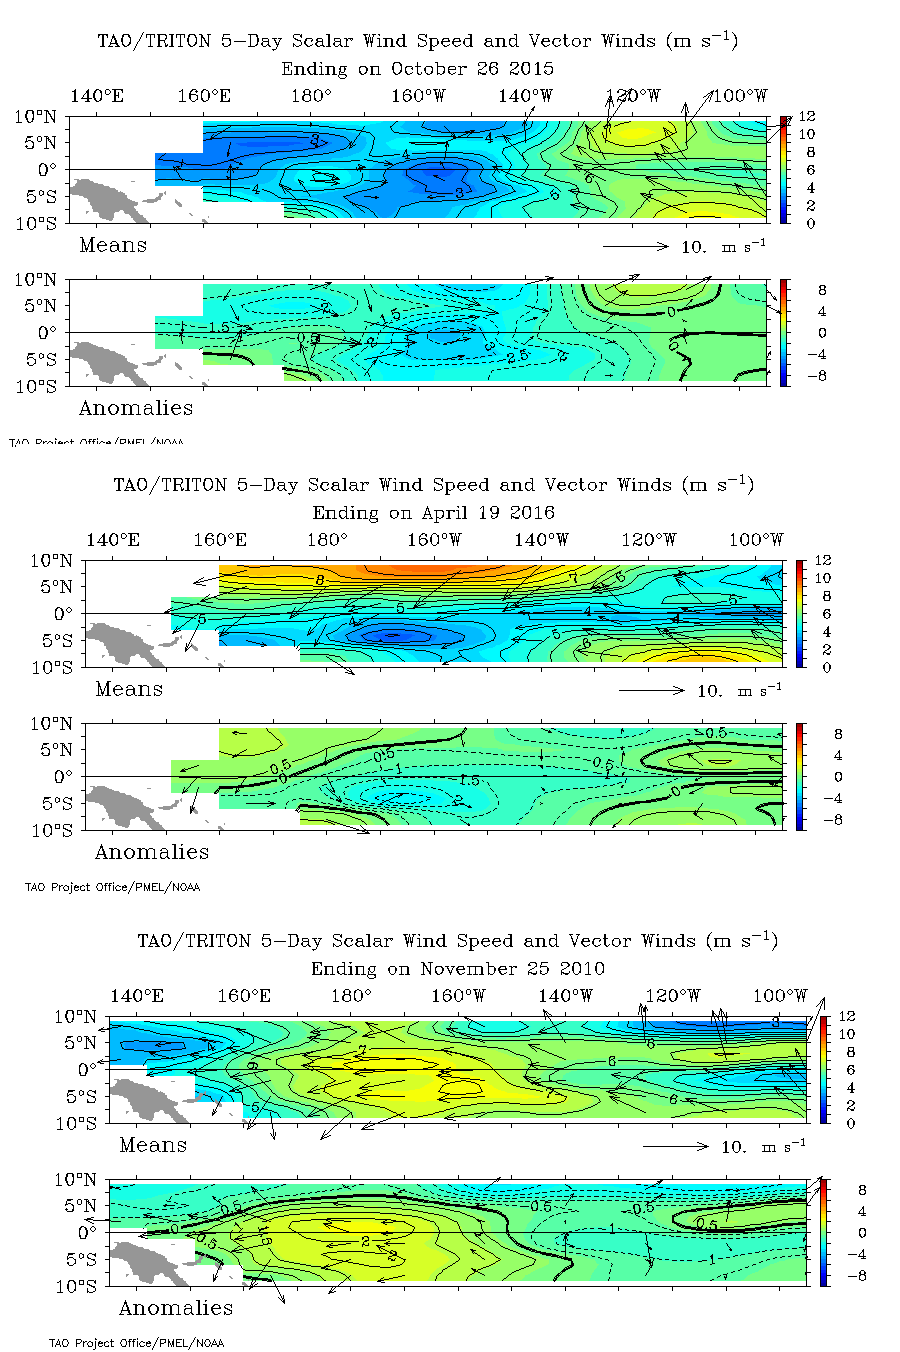 Trade winds in the Tropical Pacific were very weak this past Autumn, but have clearly begun to strongly converge again this month. However, we are still not nearly at the point of the mature La Nina event from November, 2010. (TAO/Triton).